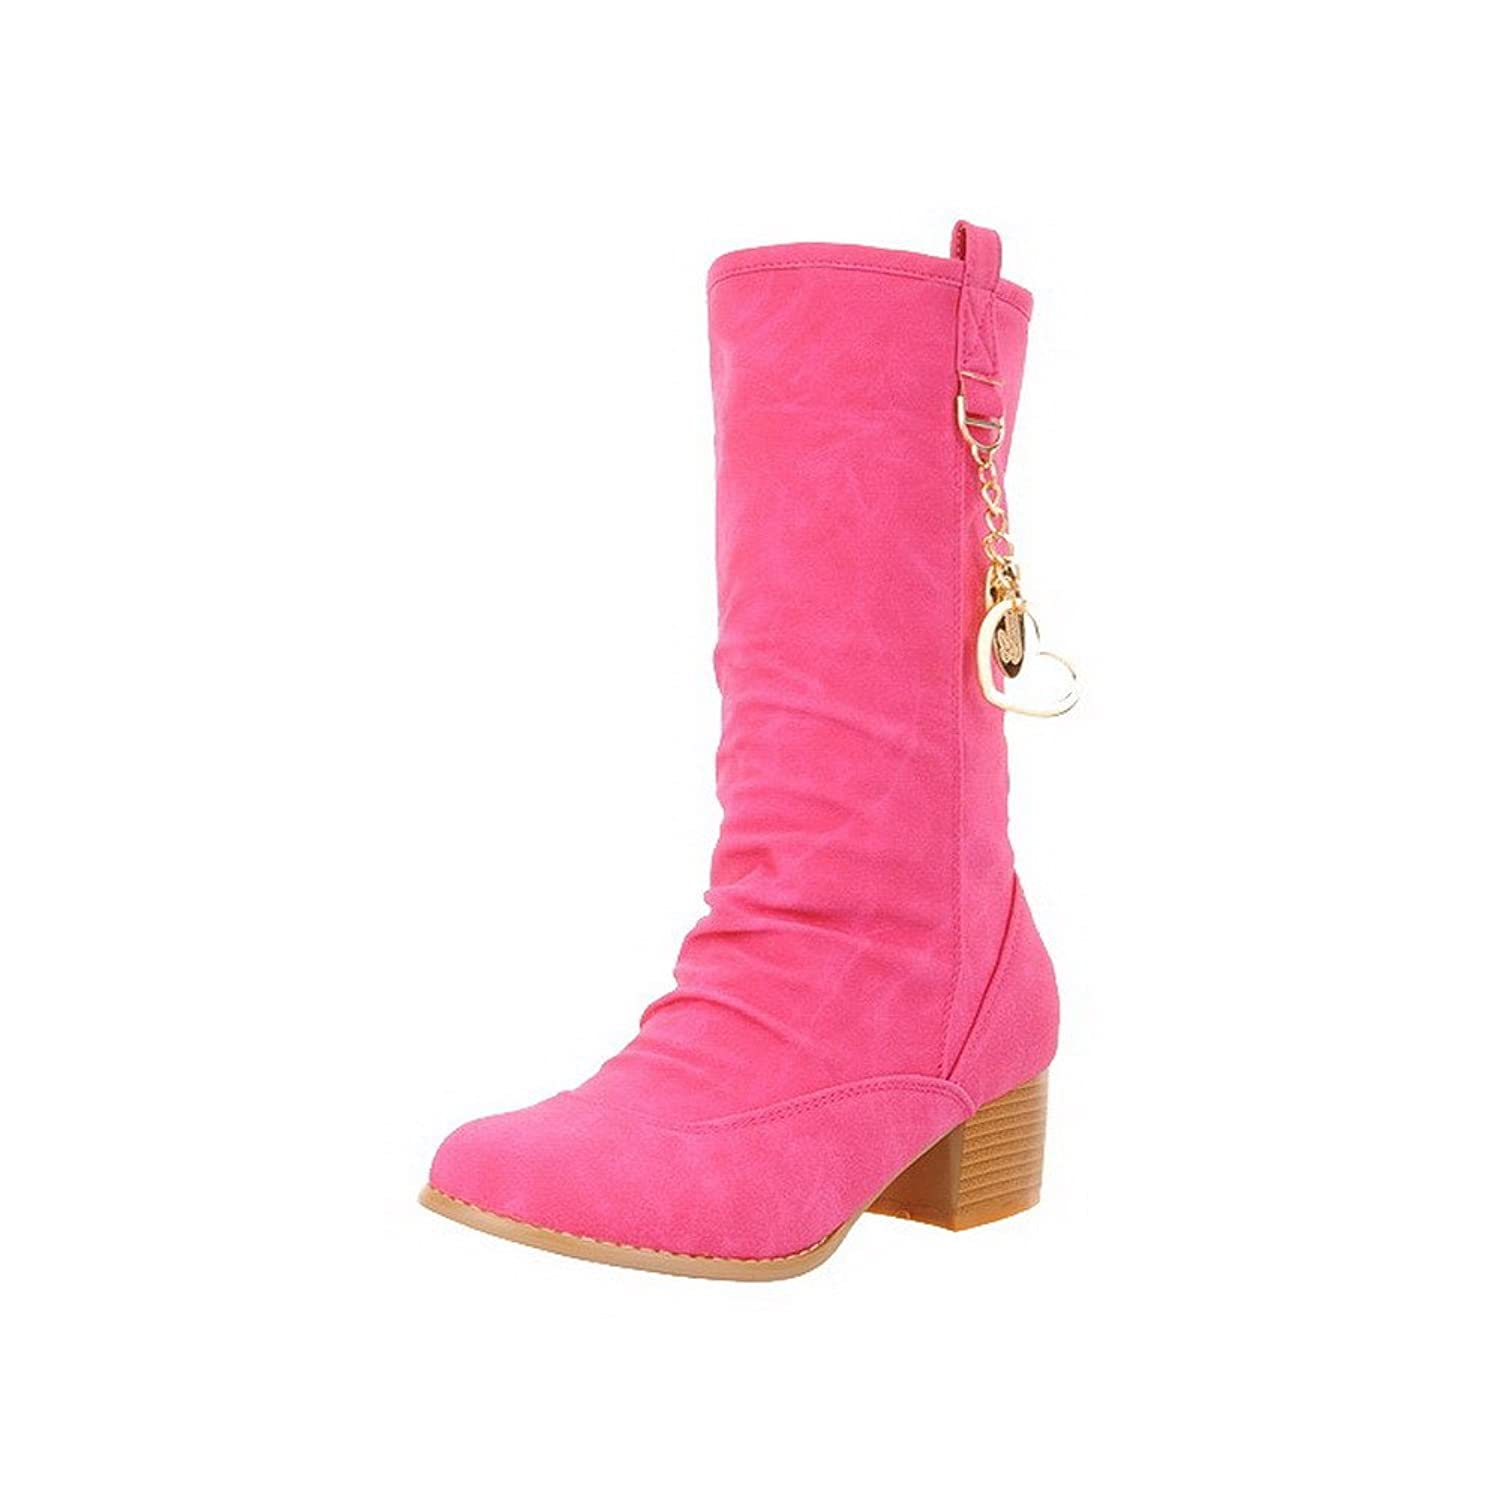 AllhqFashion Women's Solid Imitated Suede Kitten-Heels Pull-on Round Closed Toe Boots